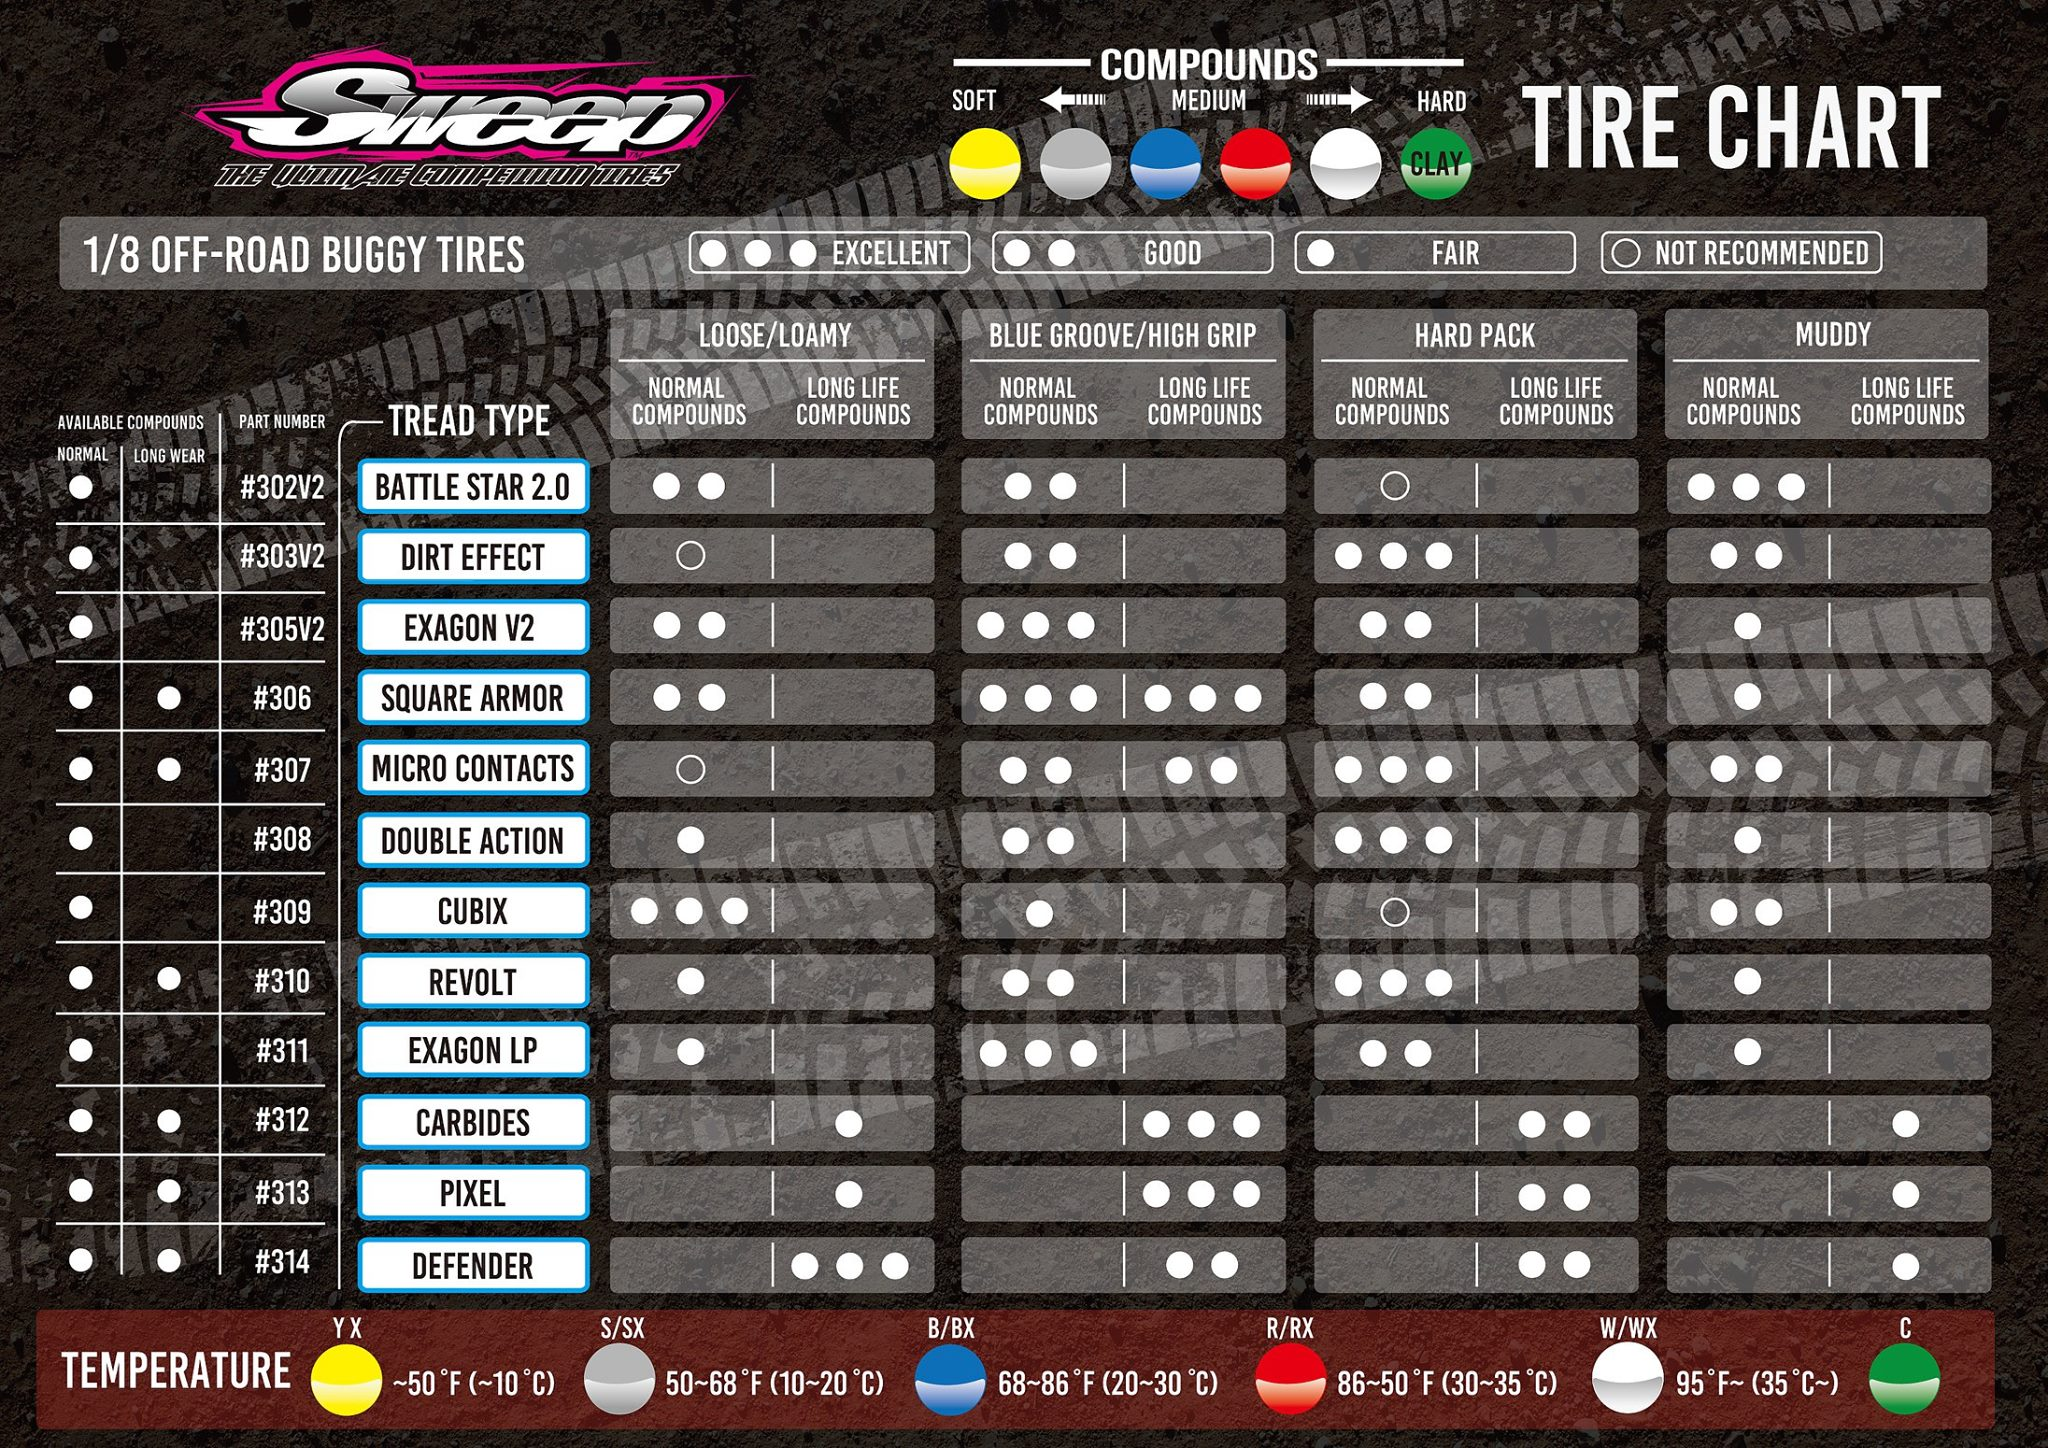 Tires Rating Chart >> Sweep Racing Tires 1/8th offroad thread - R/C Tech Forums